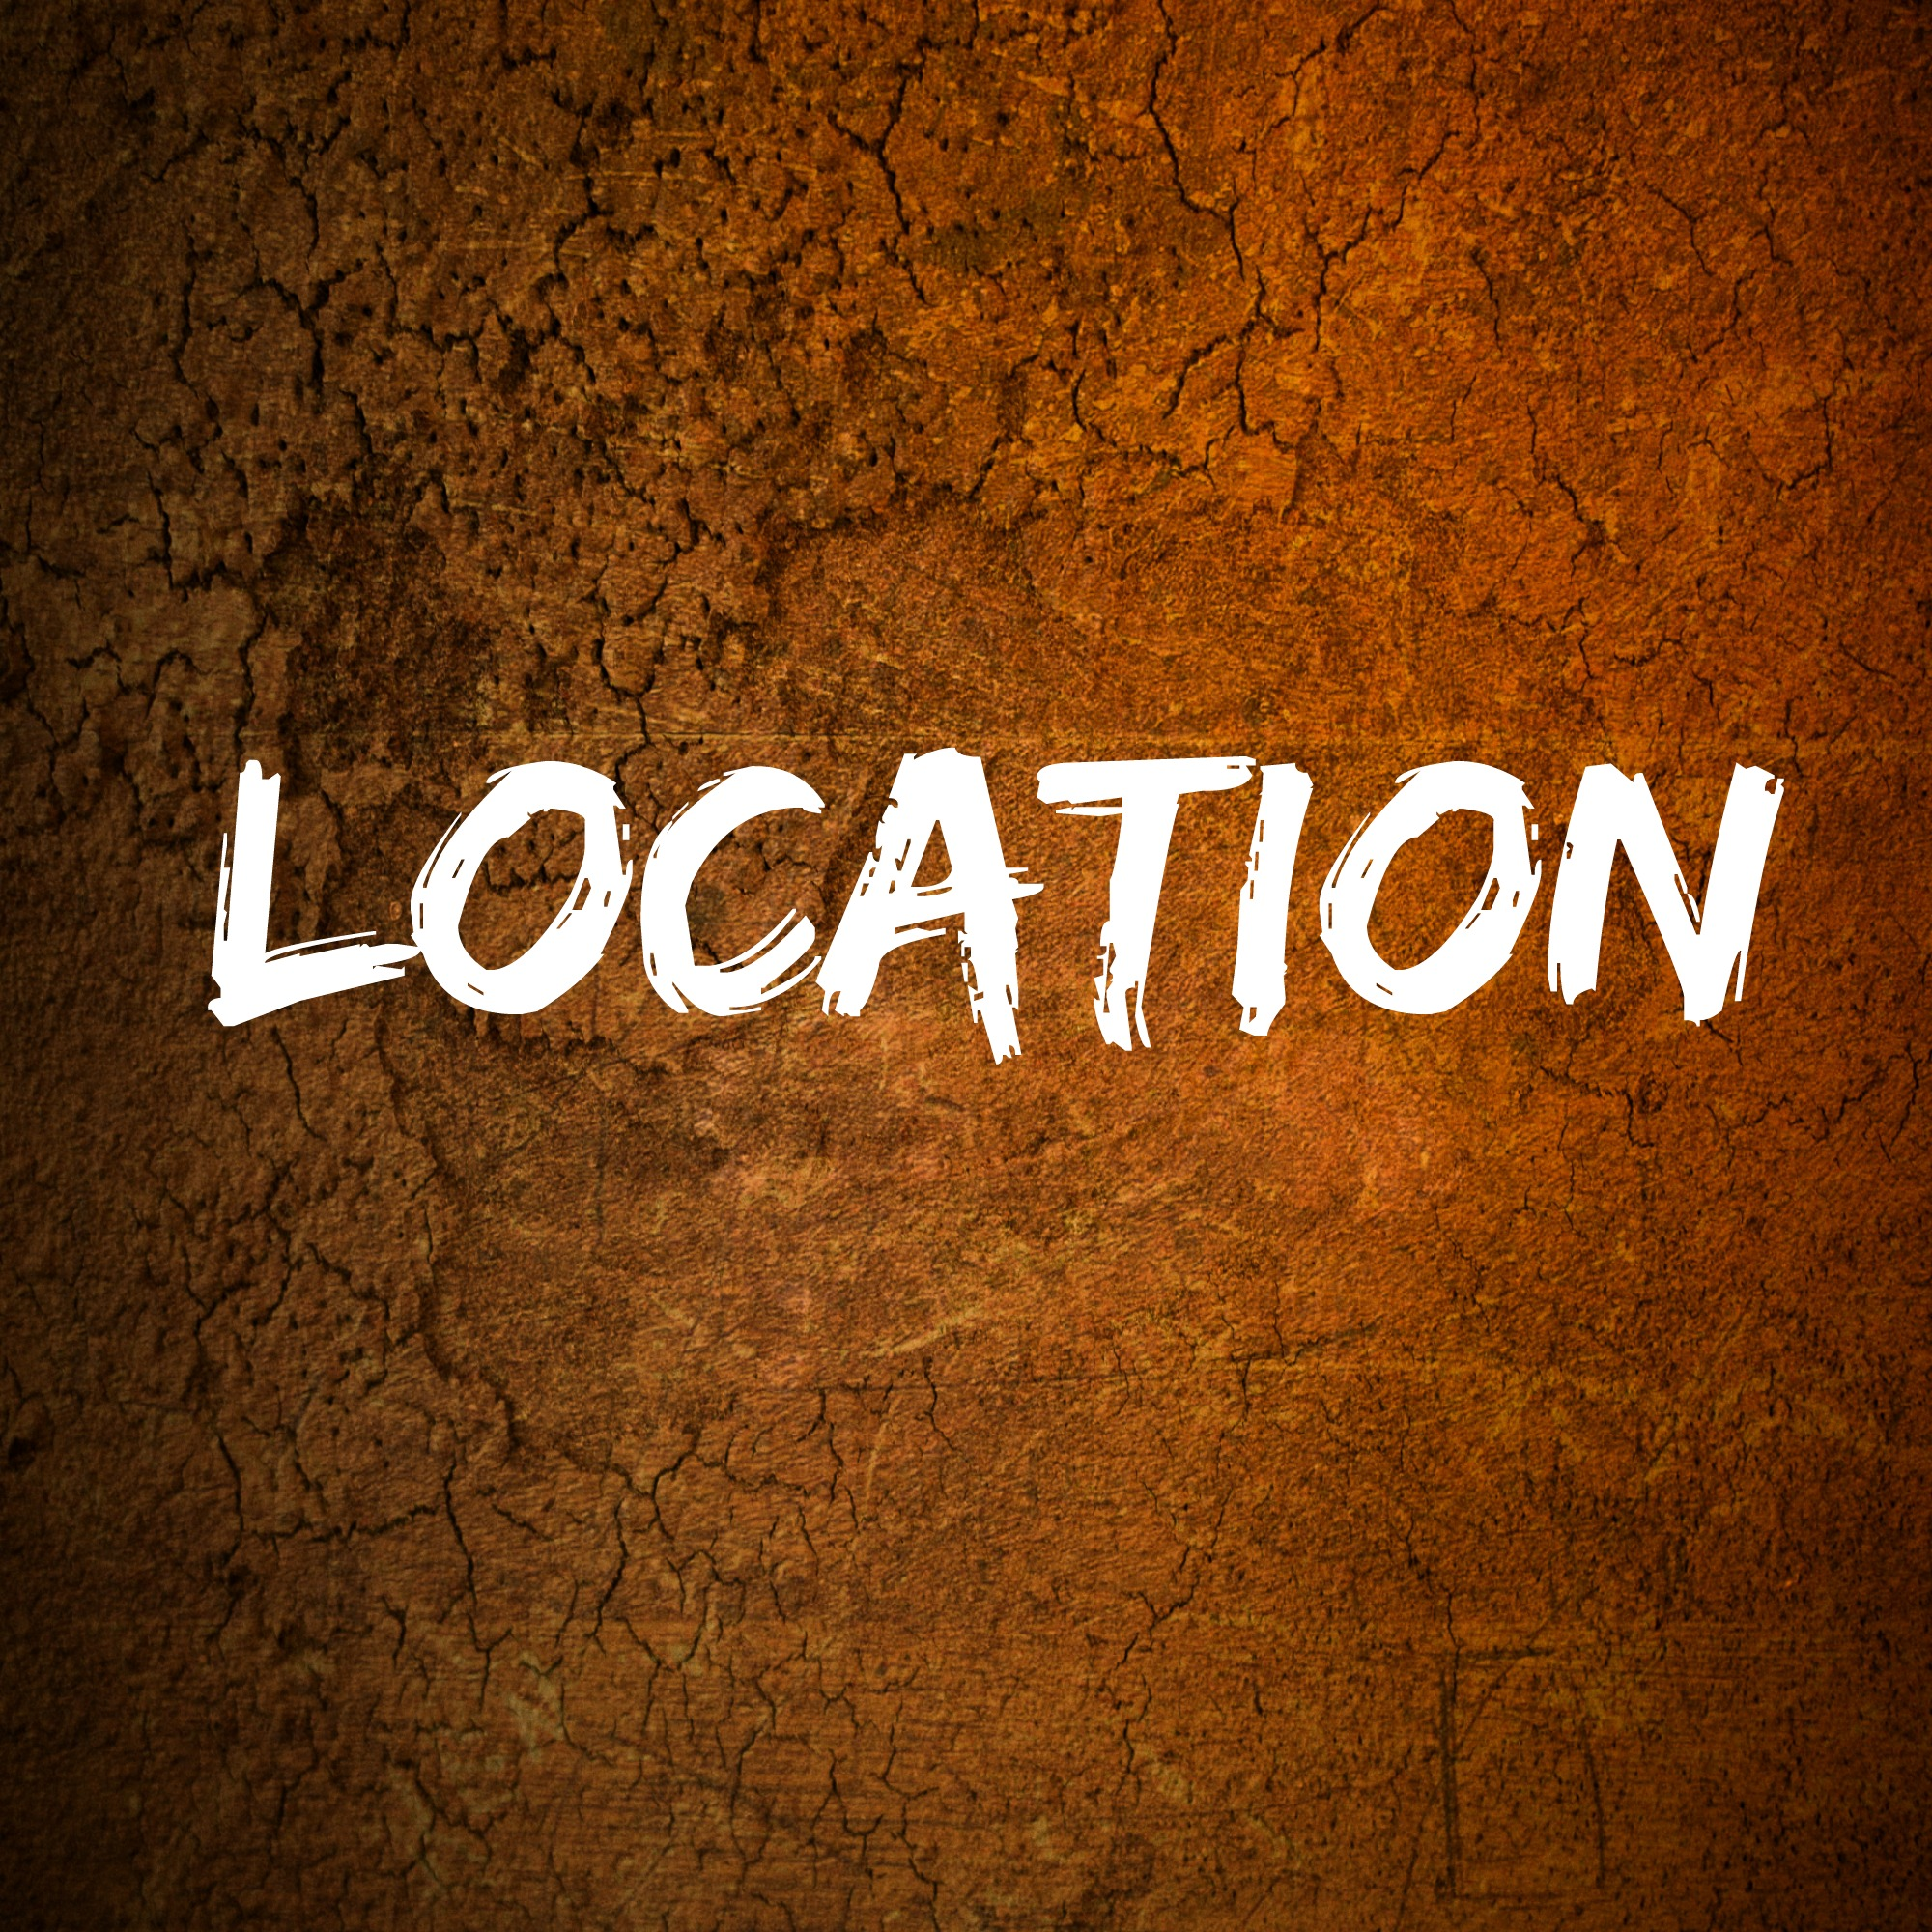 location_icon.jpg